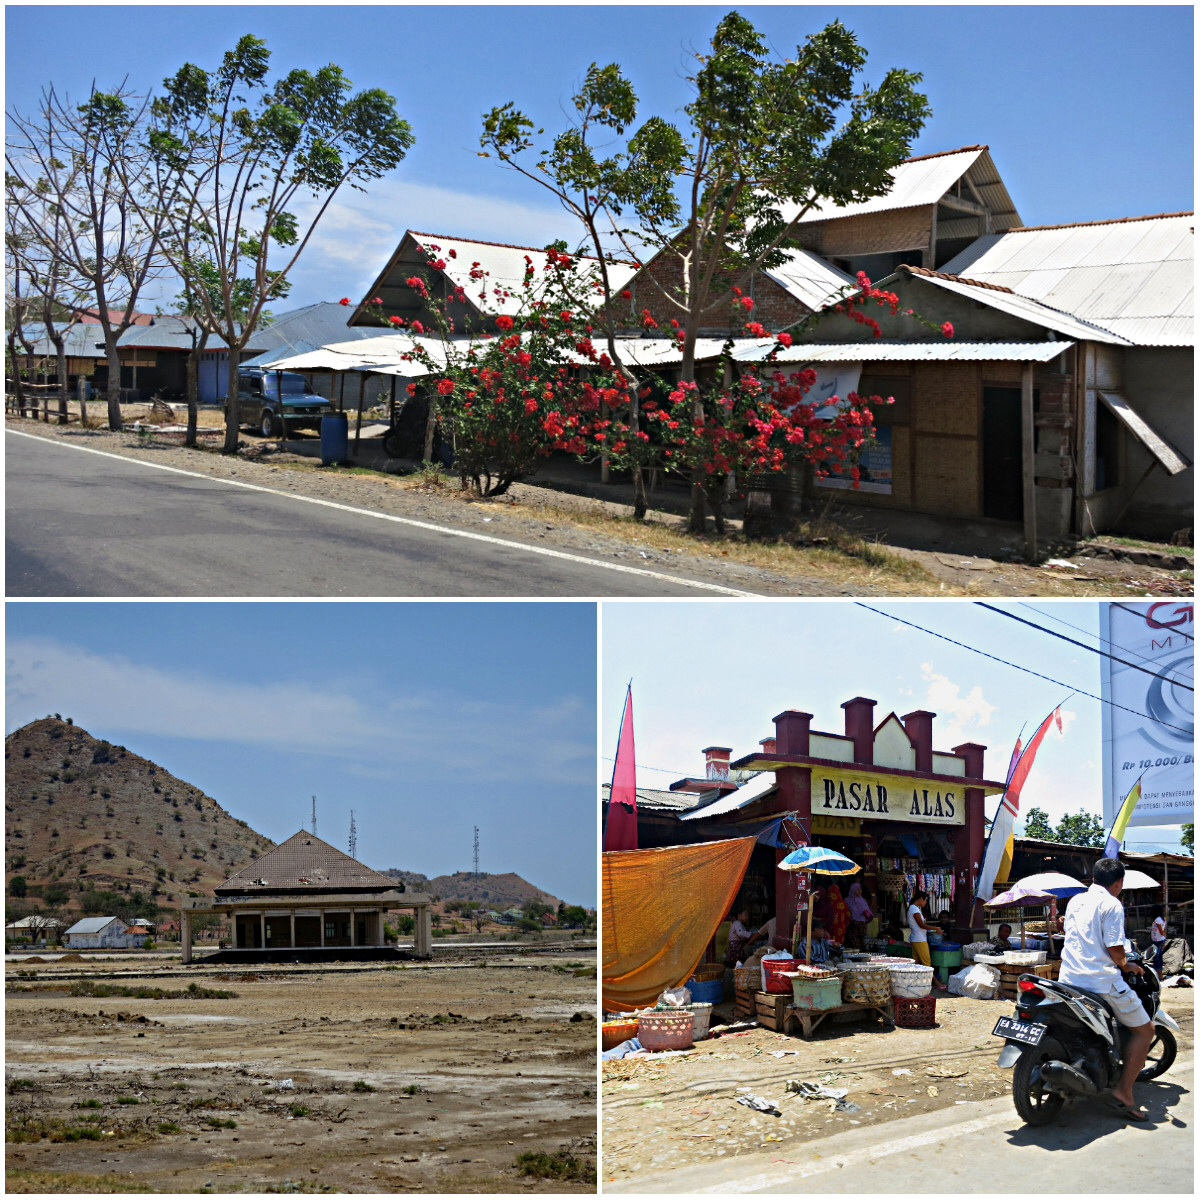 Much of Sumbawa remains under developed , though the infrastructure is already here.